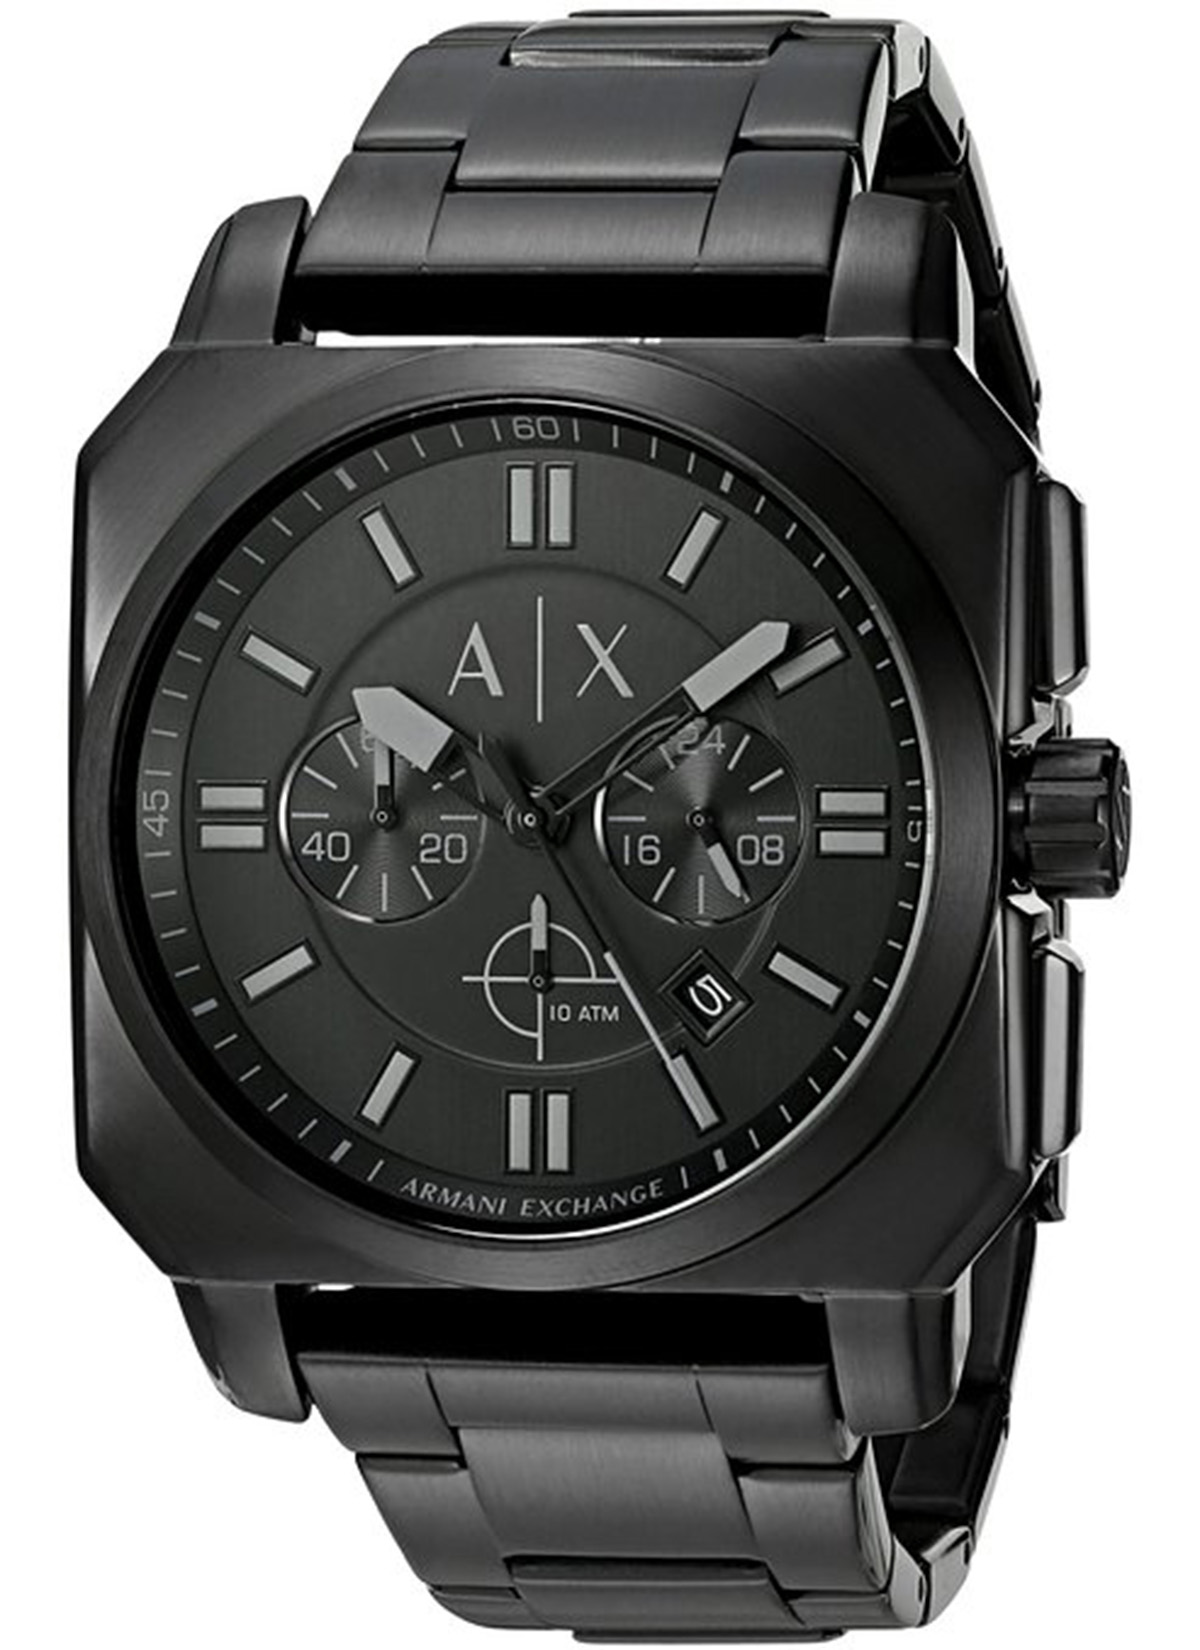 1a2139f4180 Details about NEW Armani Exchange AX1651 Men s Takedown Black Stainless  Steel Watch